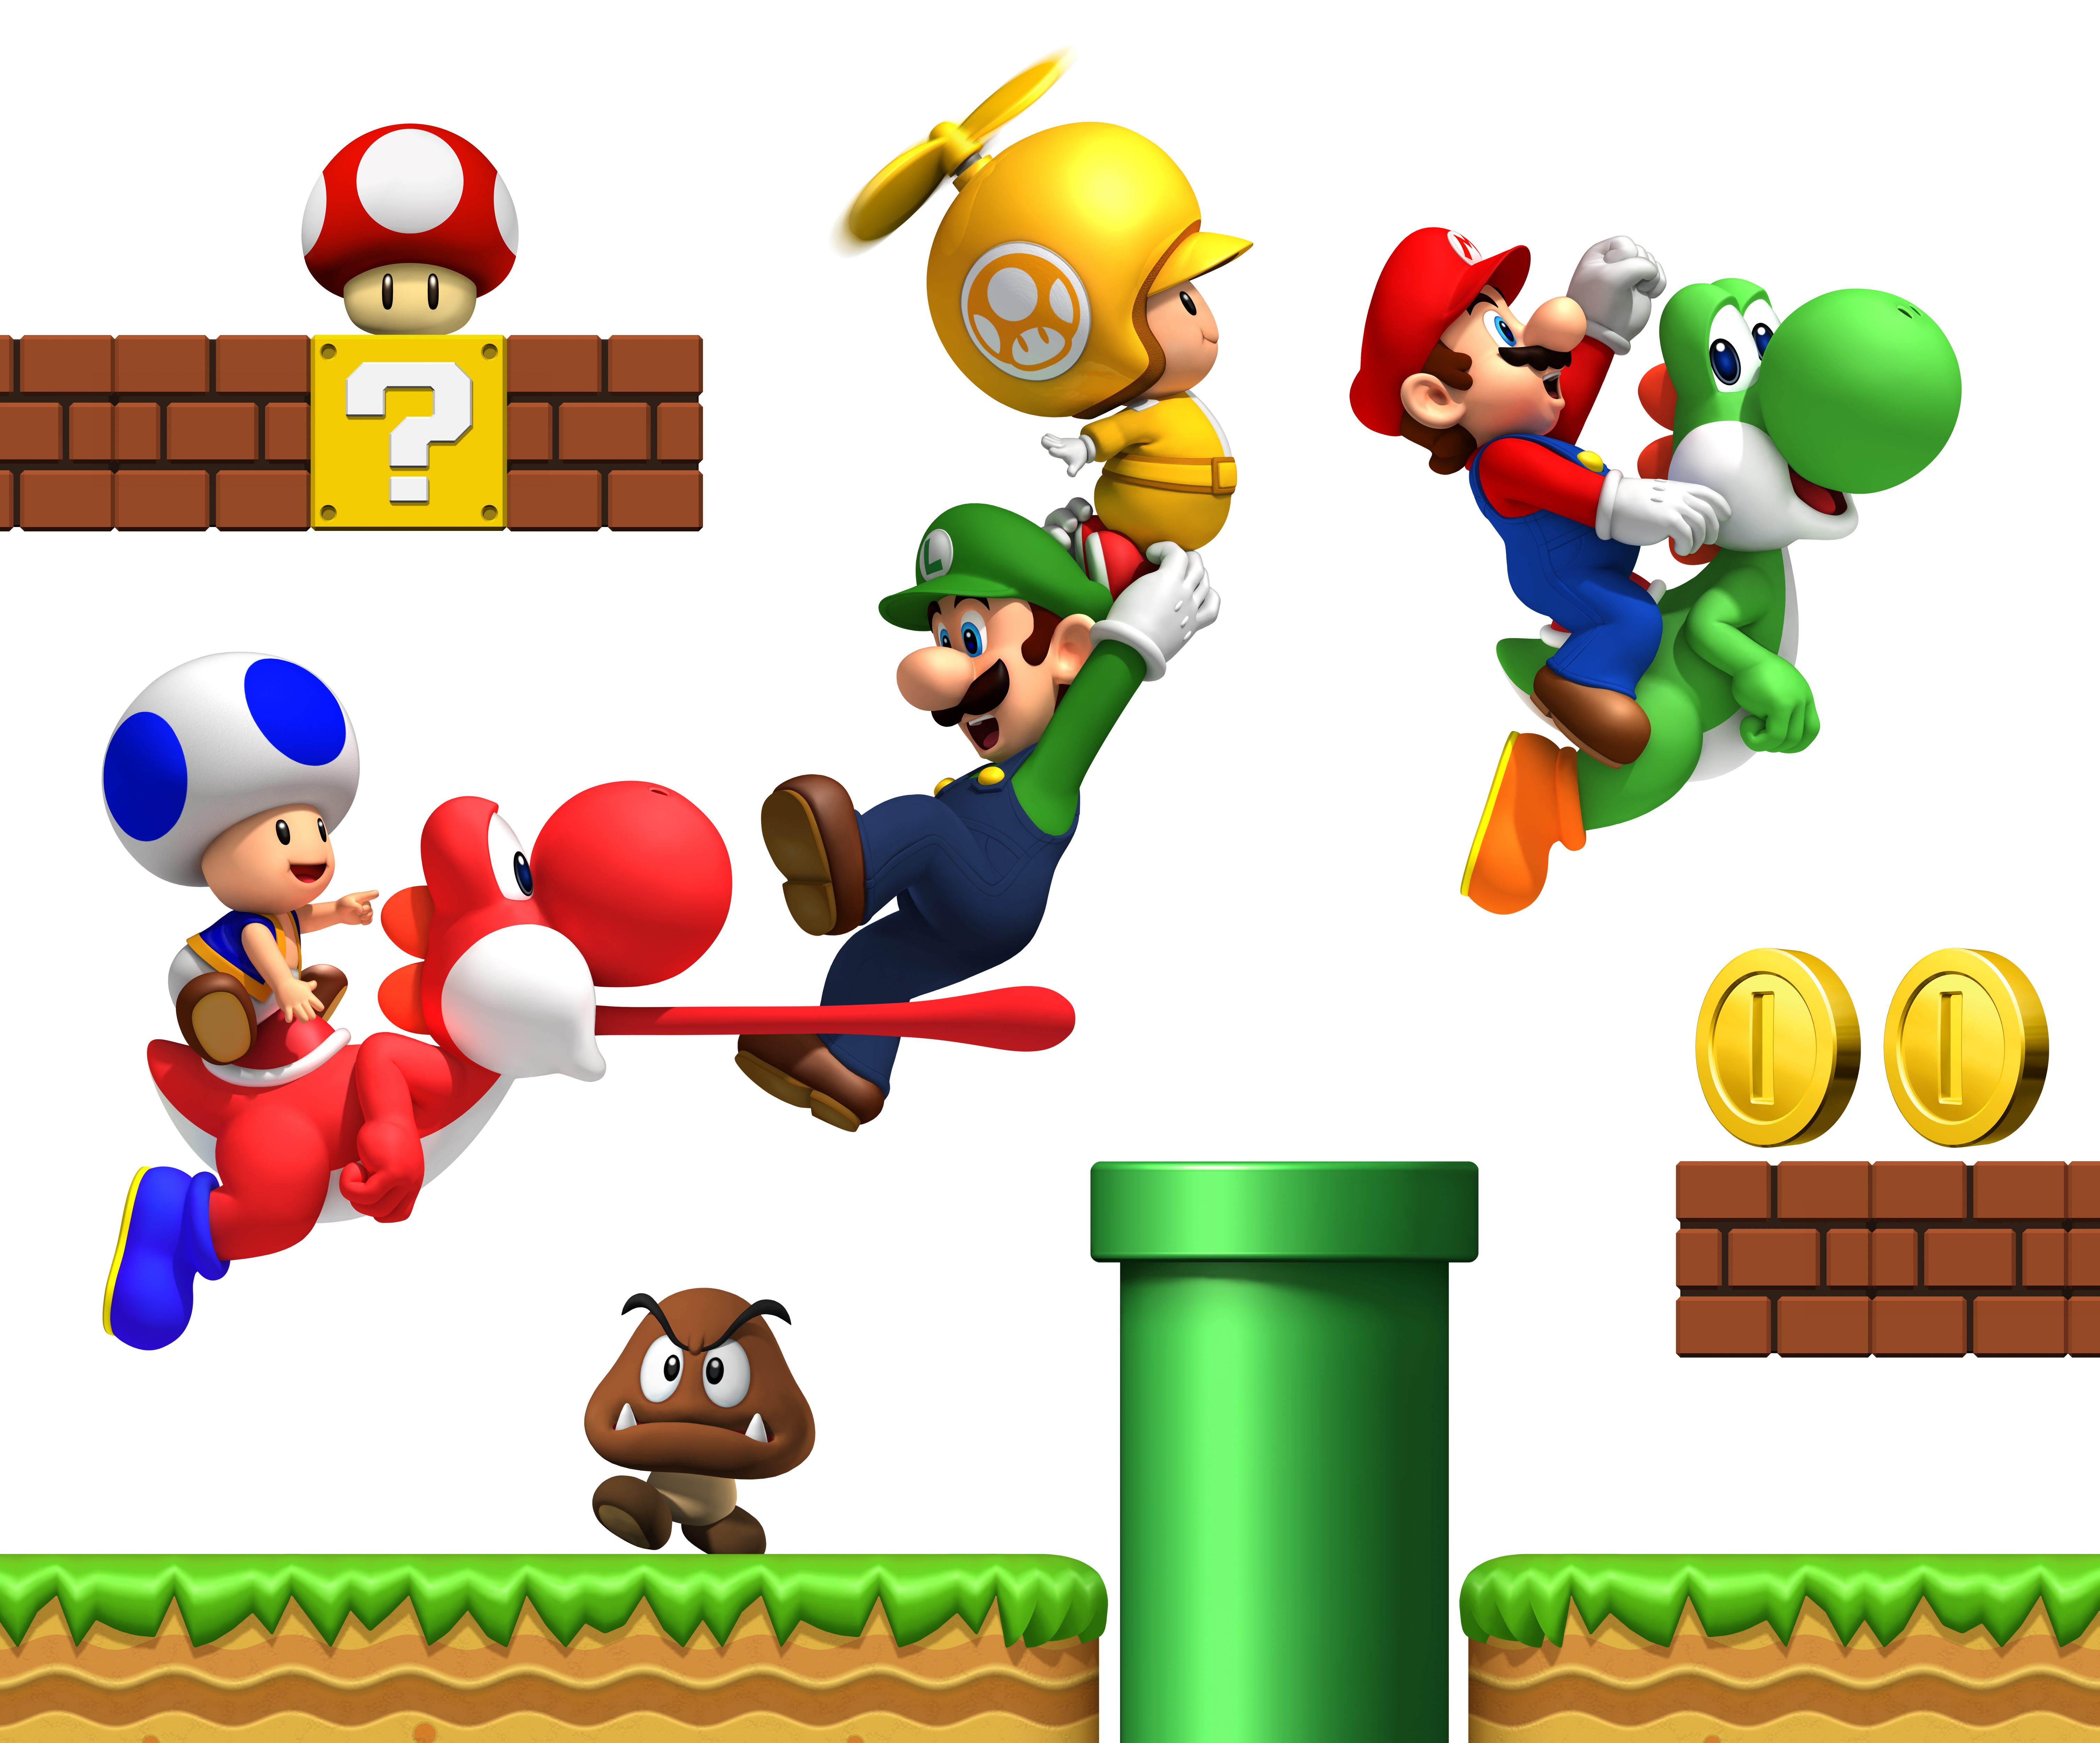 New super mario bros wii wallpaper 39 jeux vid o wallpapers directory - Amis de mario ...